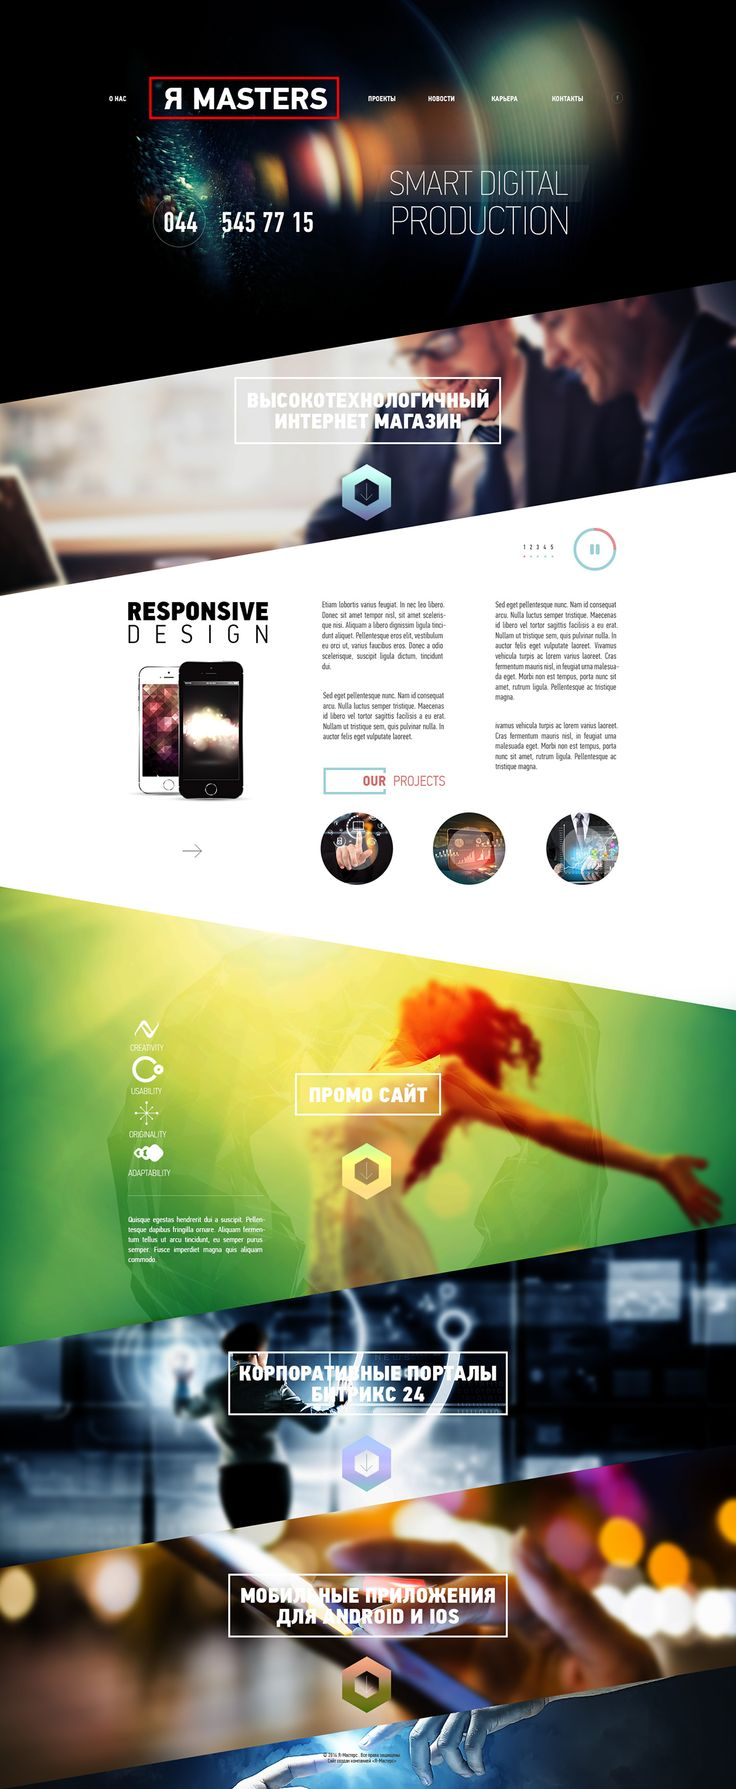 Collection of mockups on Behance